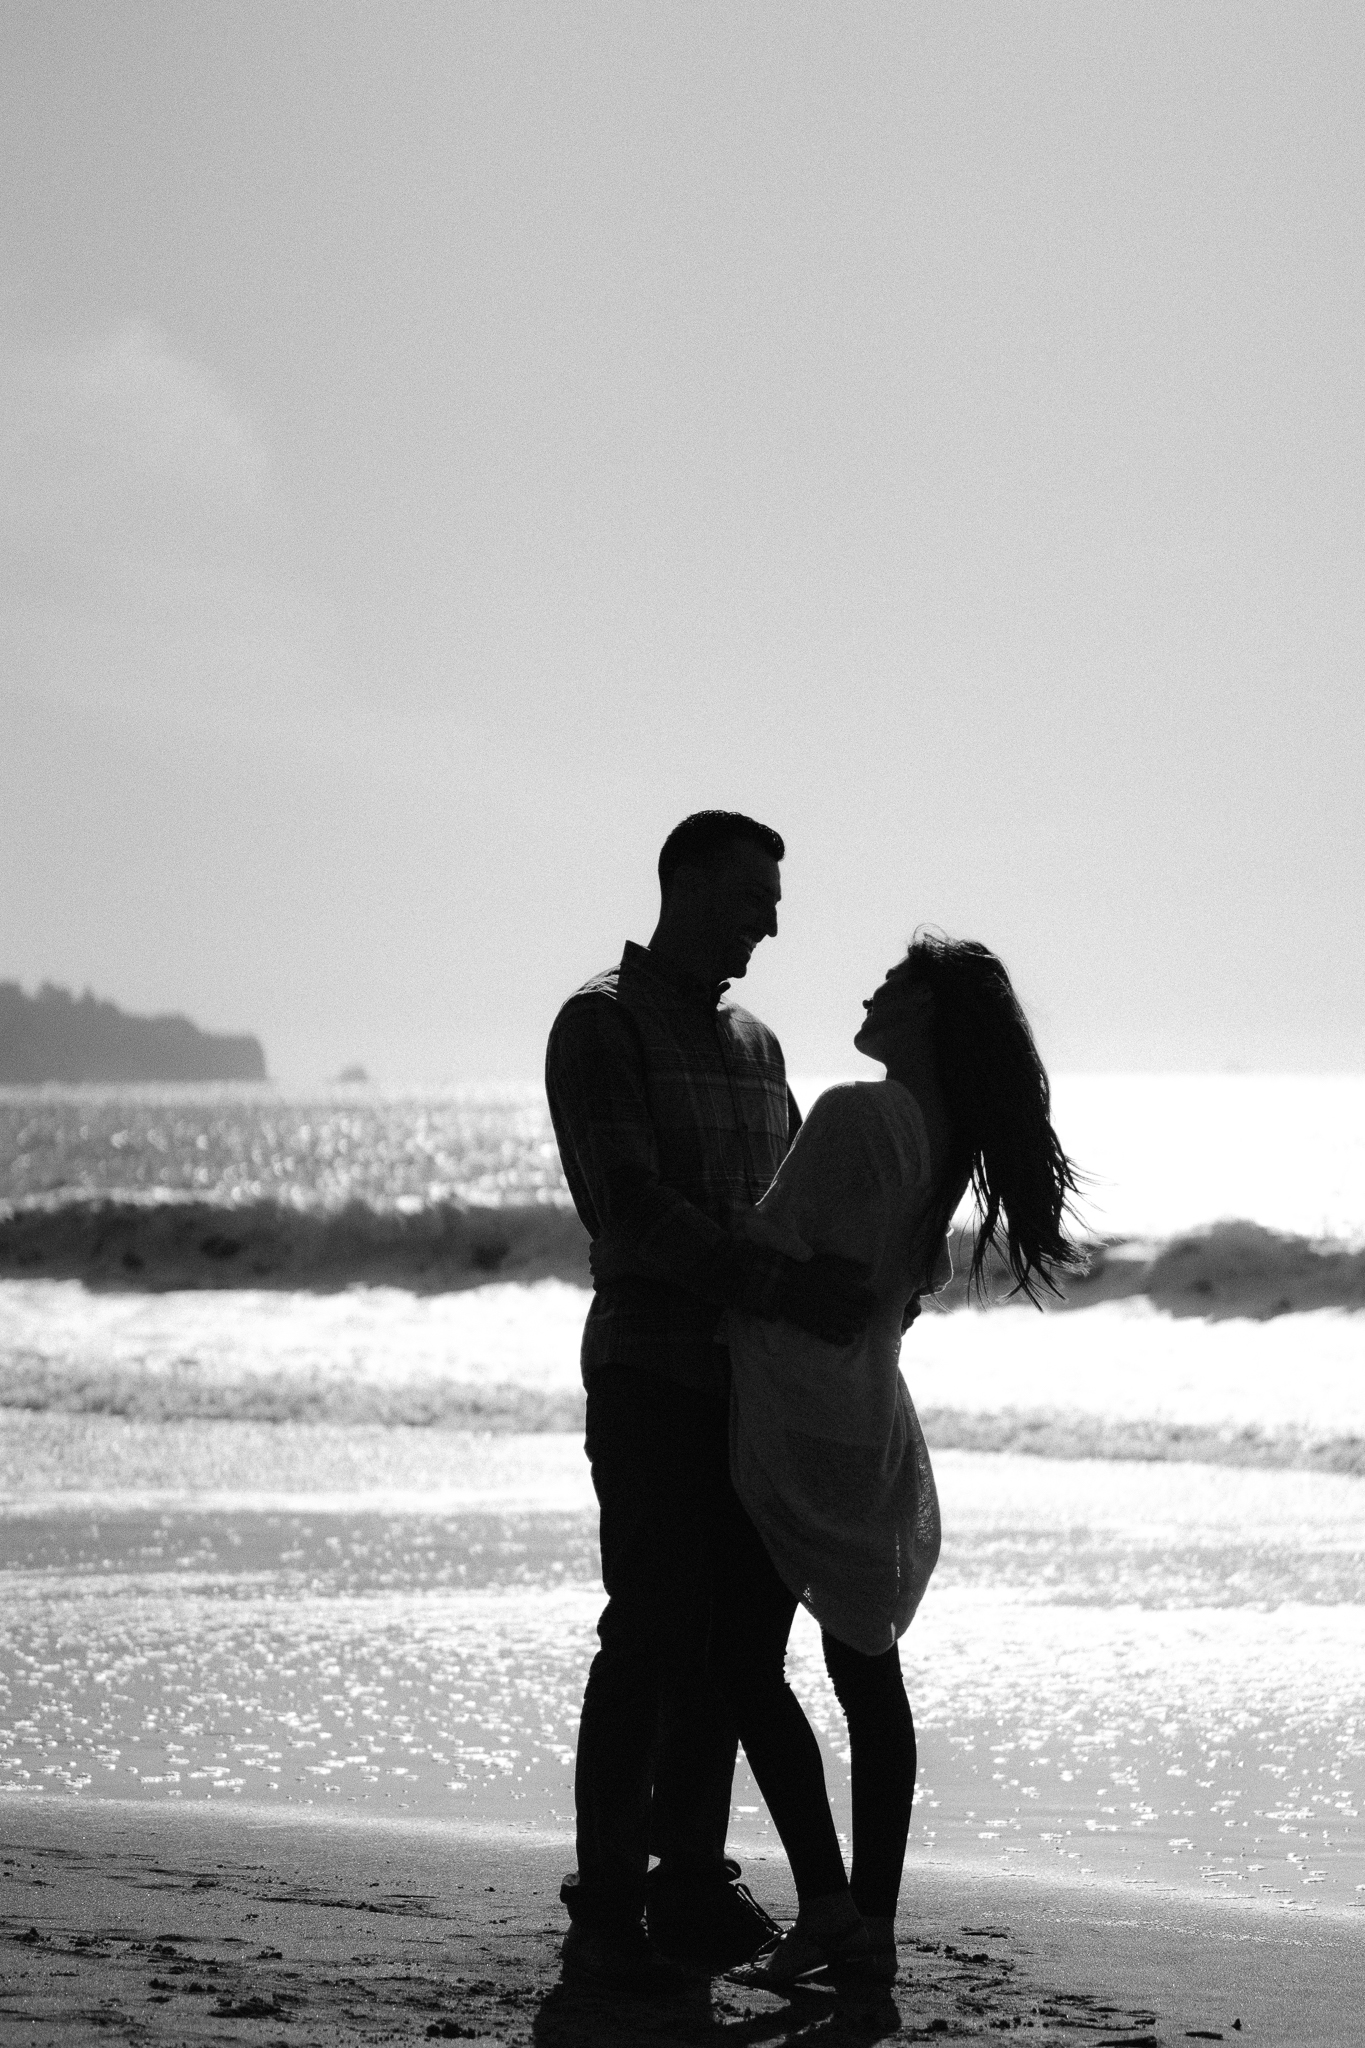 Engaged couple writing their initials in the sand at Baker Beach in San Francisco during their romantic sunset photo shoot celebrating their engagement.